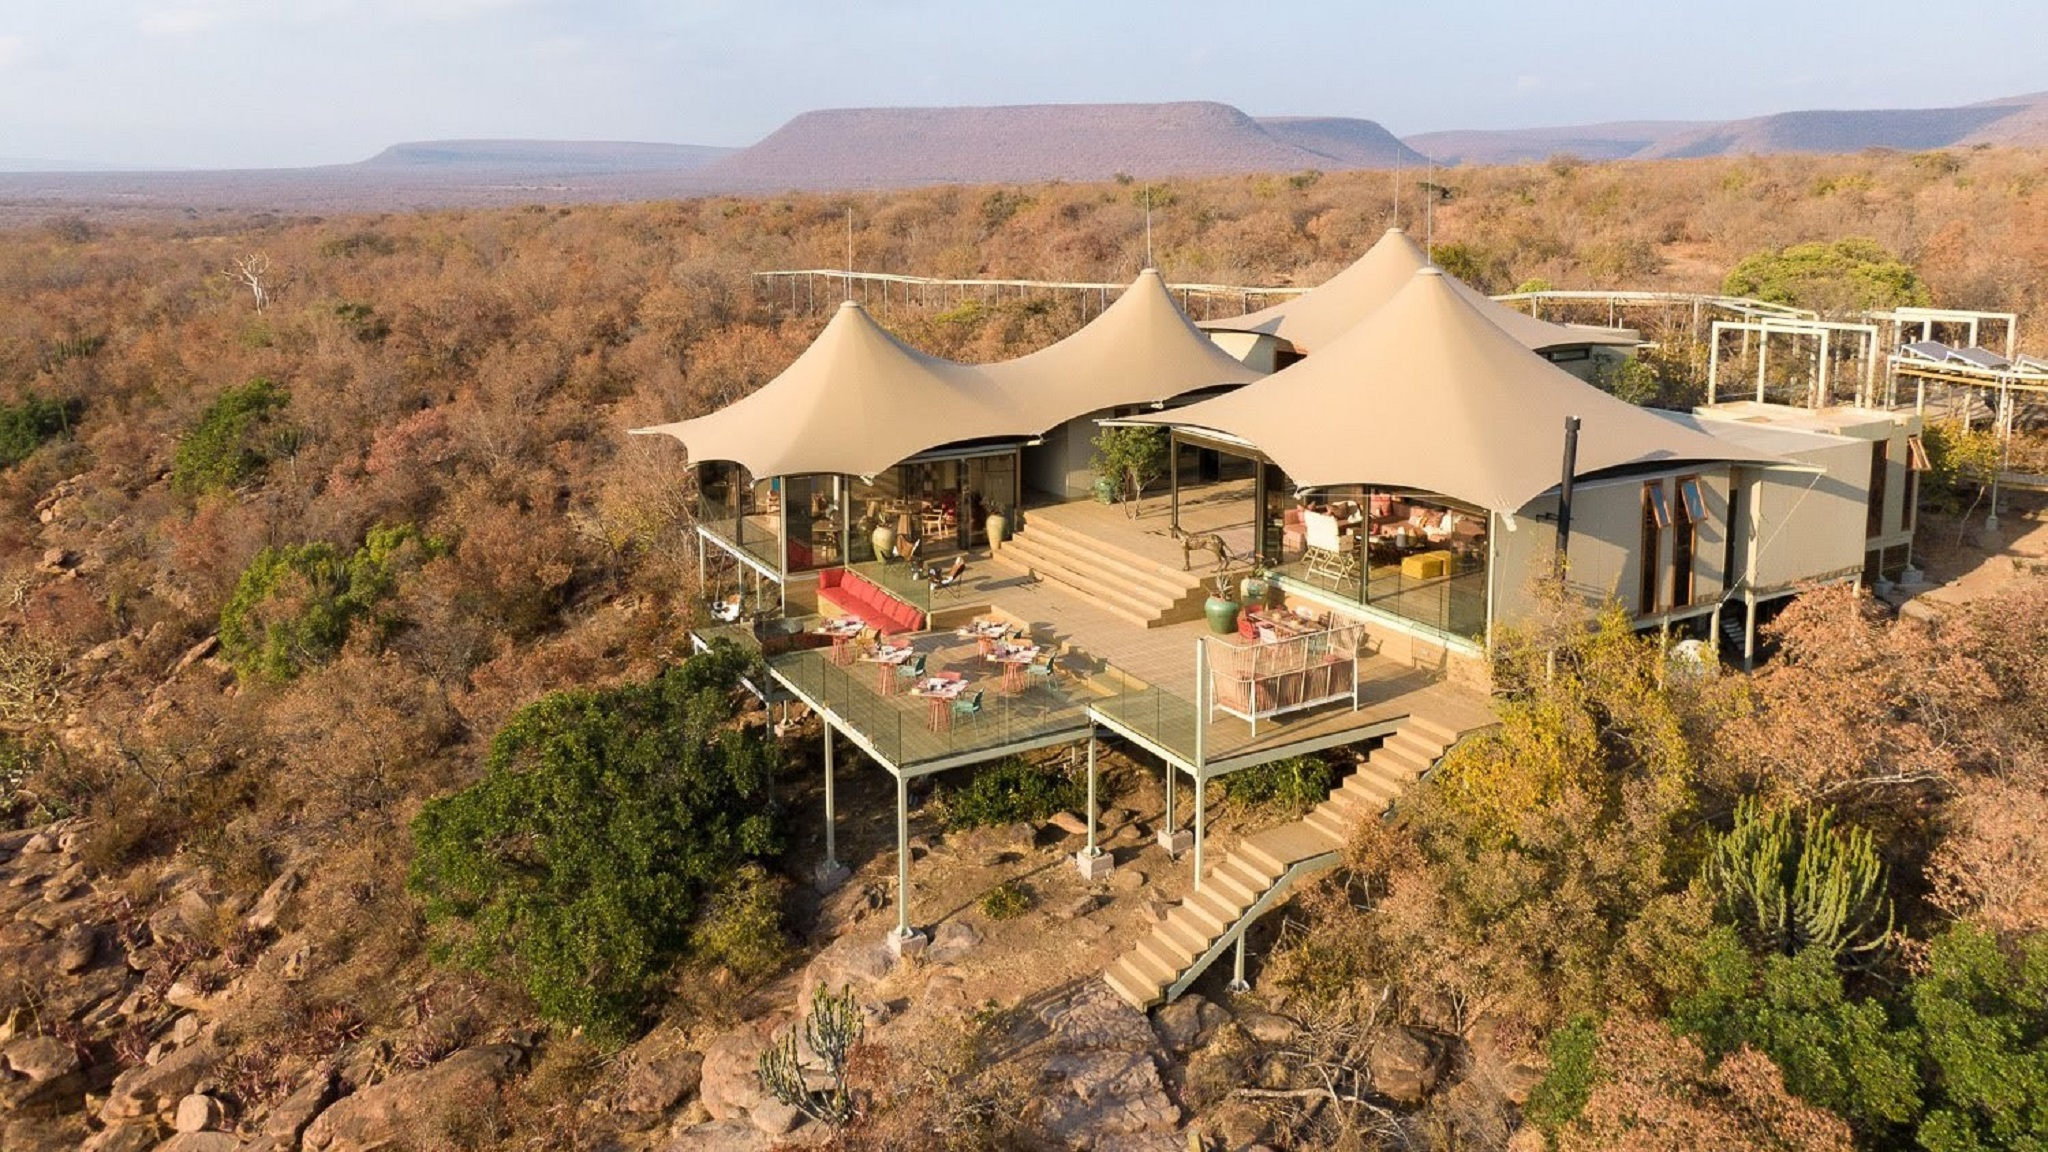 Shortcuts: hotel openings from South Africa and London